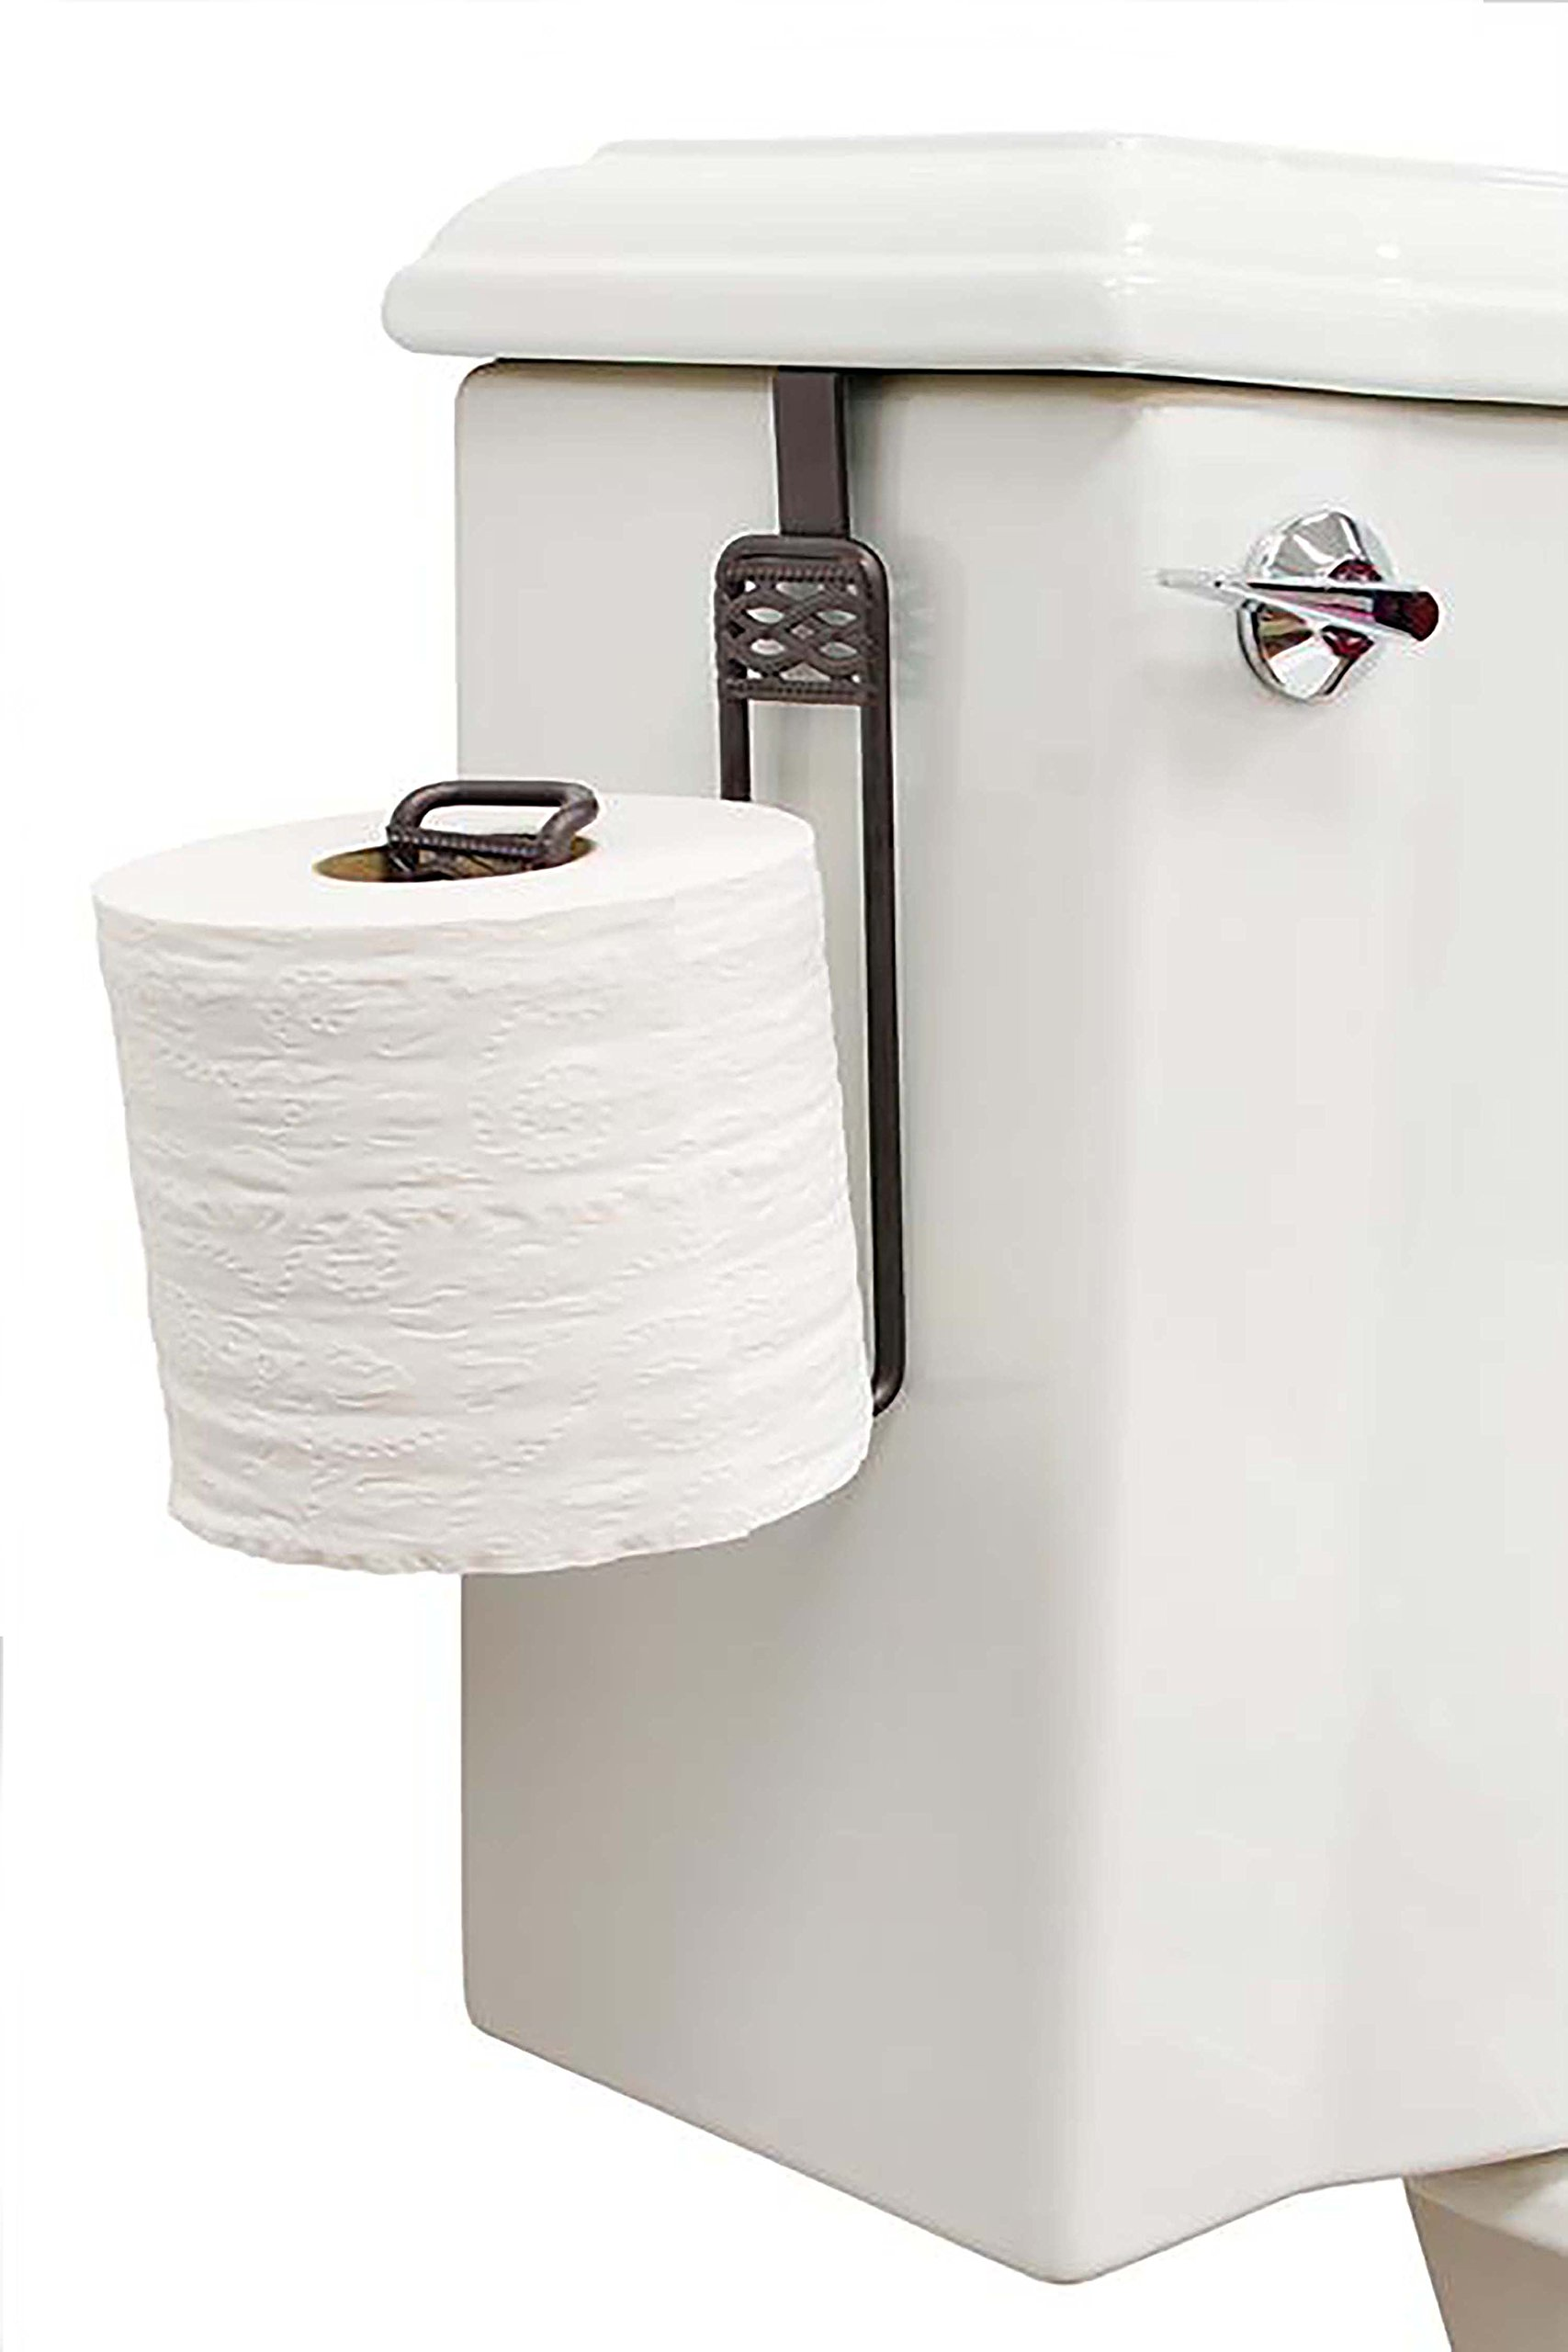 Bath Bliss Over-the-Tank Toilet Roll Holder, Rust Links